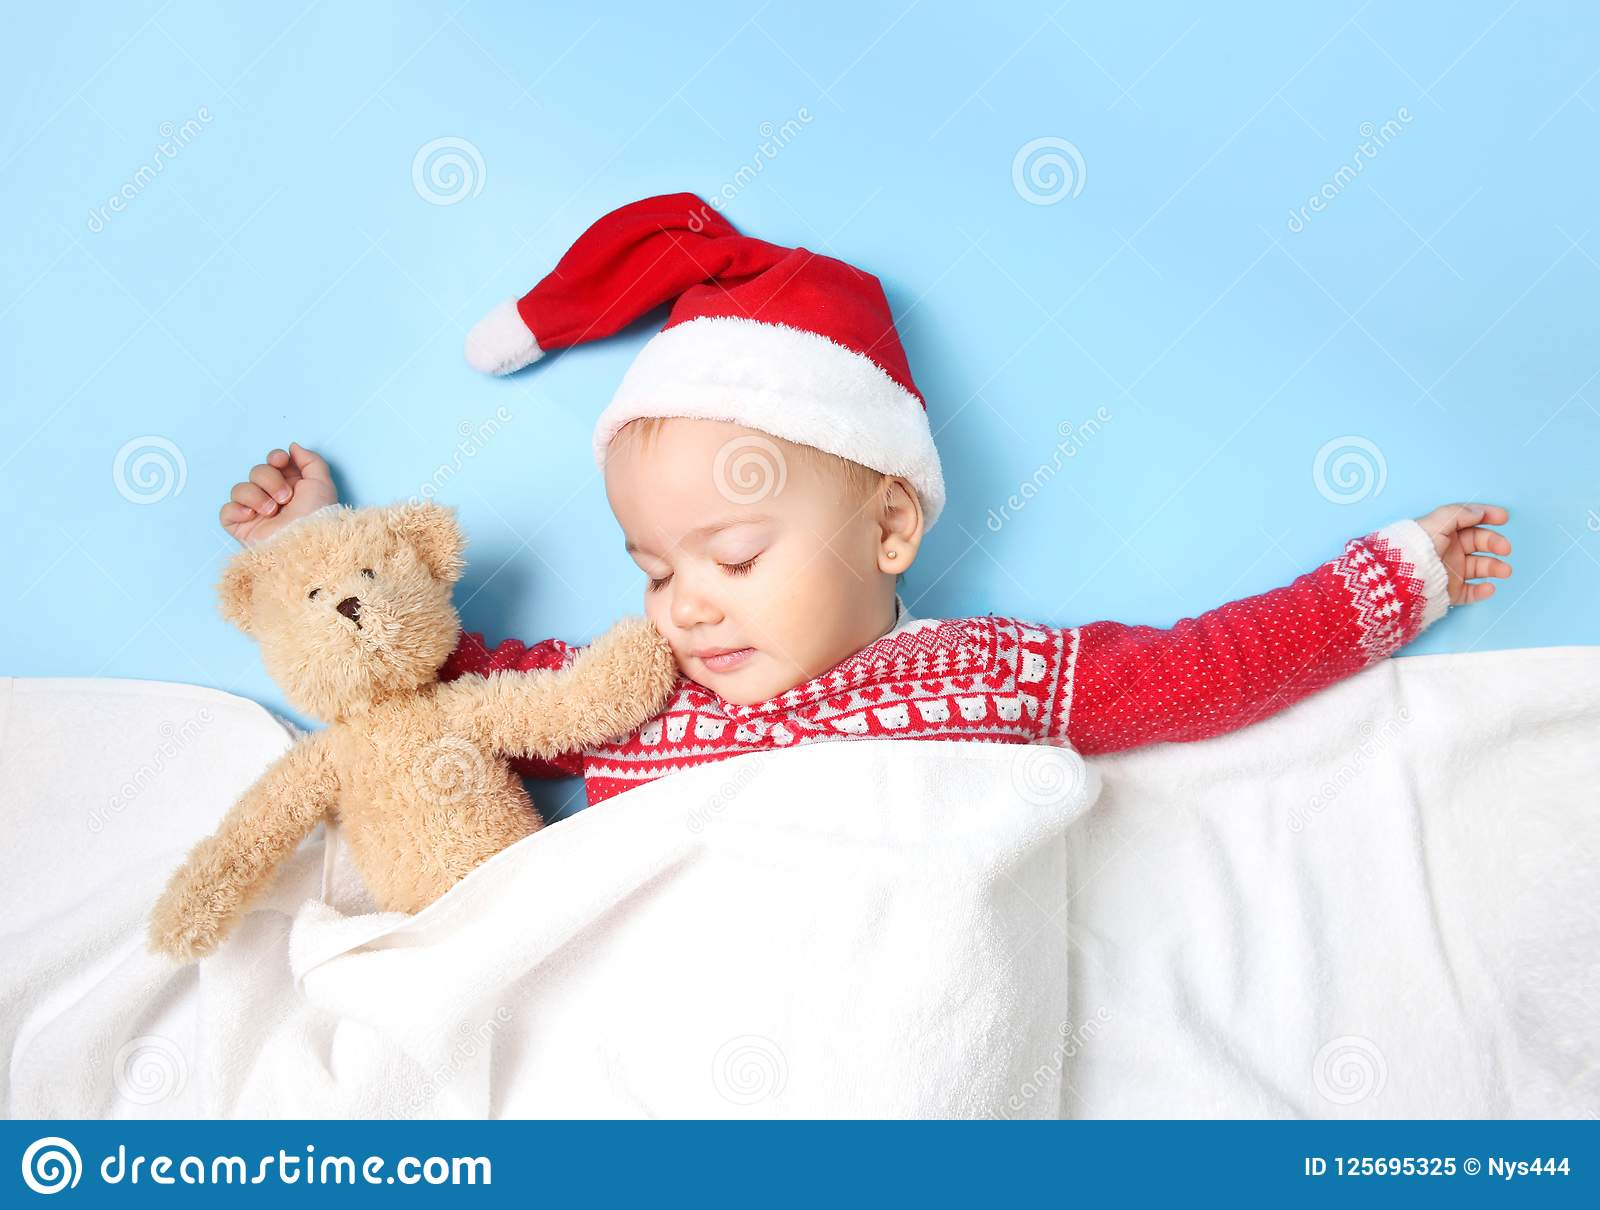 4630f97dfd6 Baby In Santa Hat Sleeping Empty Copy Space. Stock Image - Image of ...